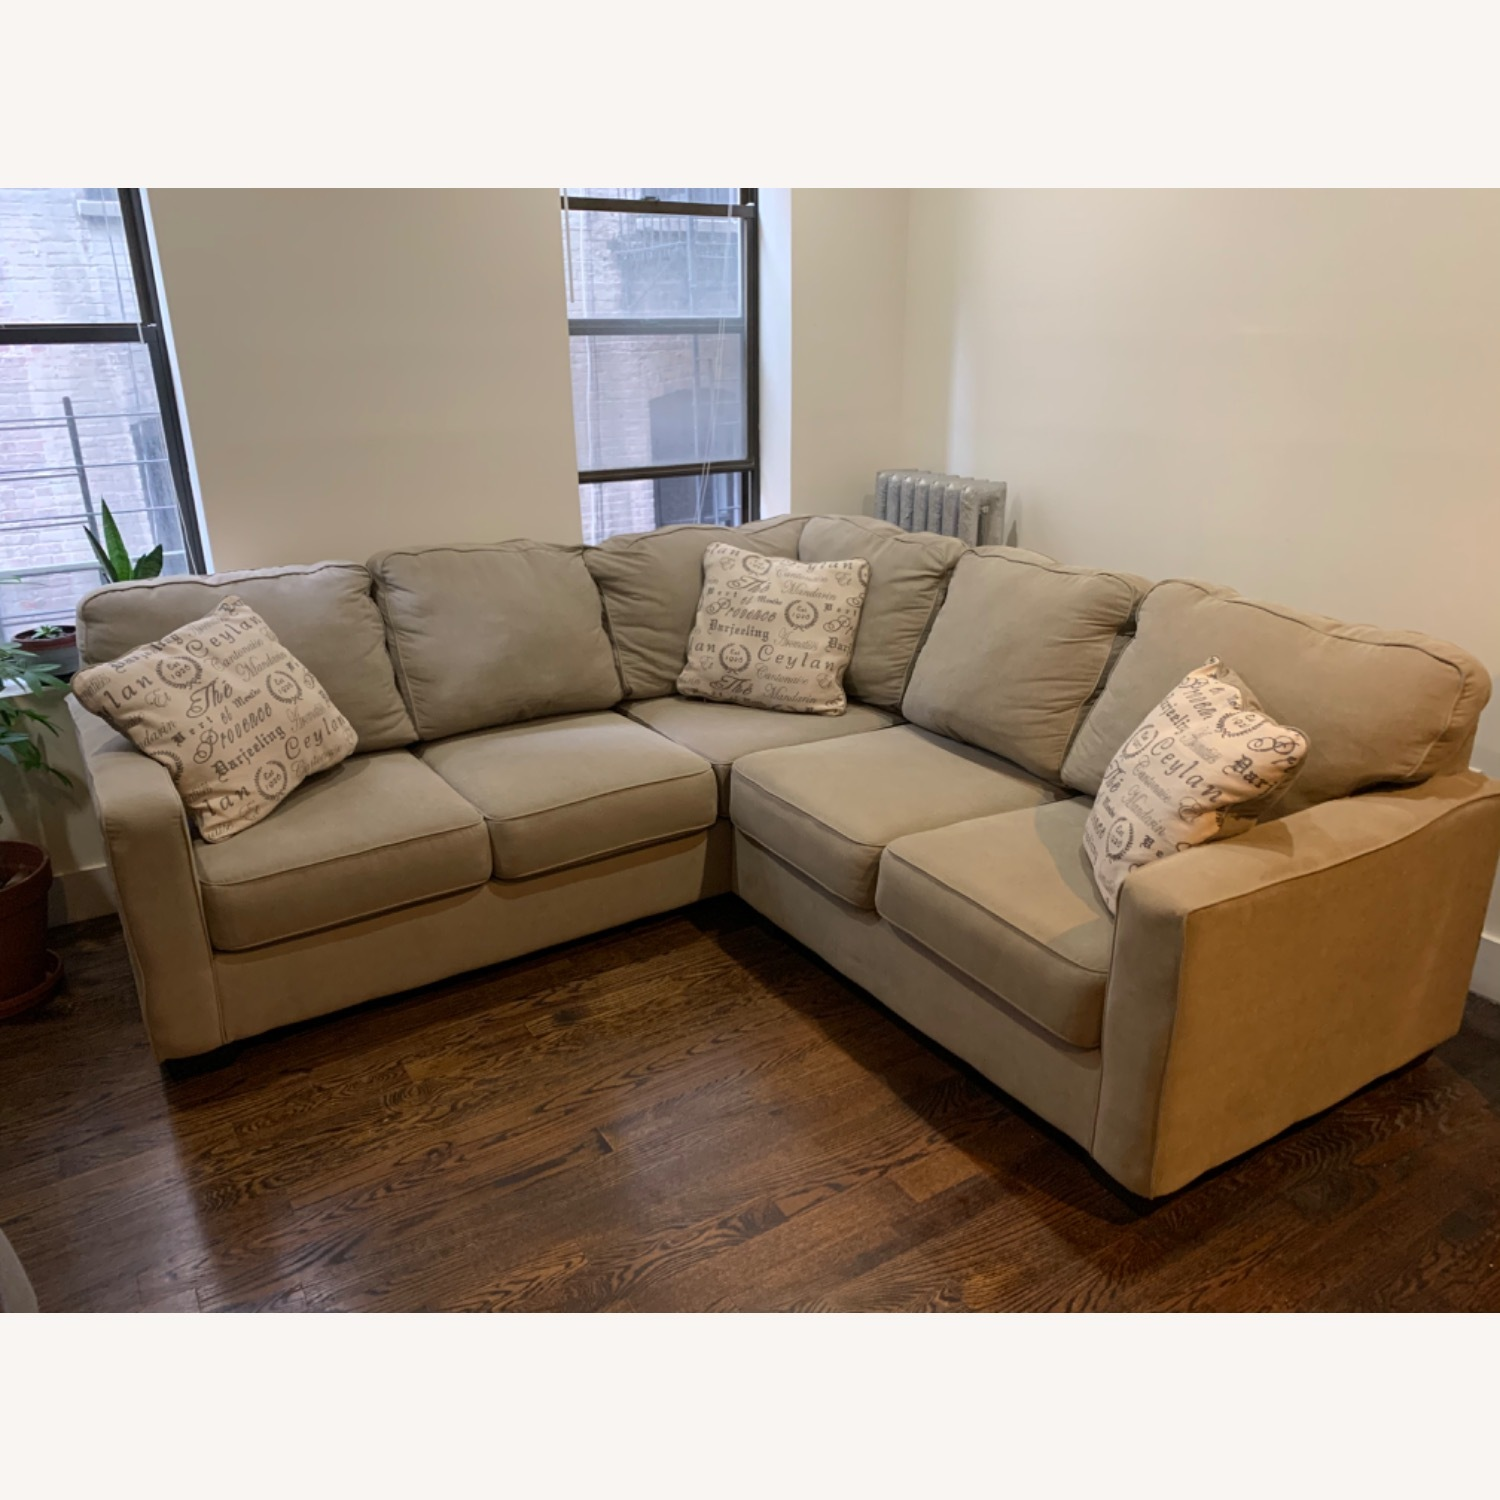 Ashley Furniture Big Comfy Couch - image-5